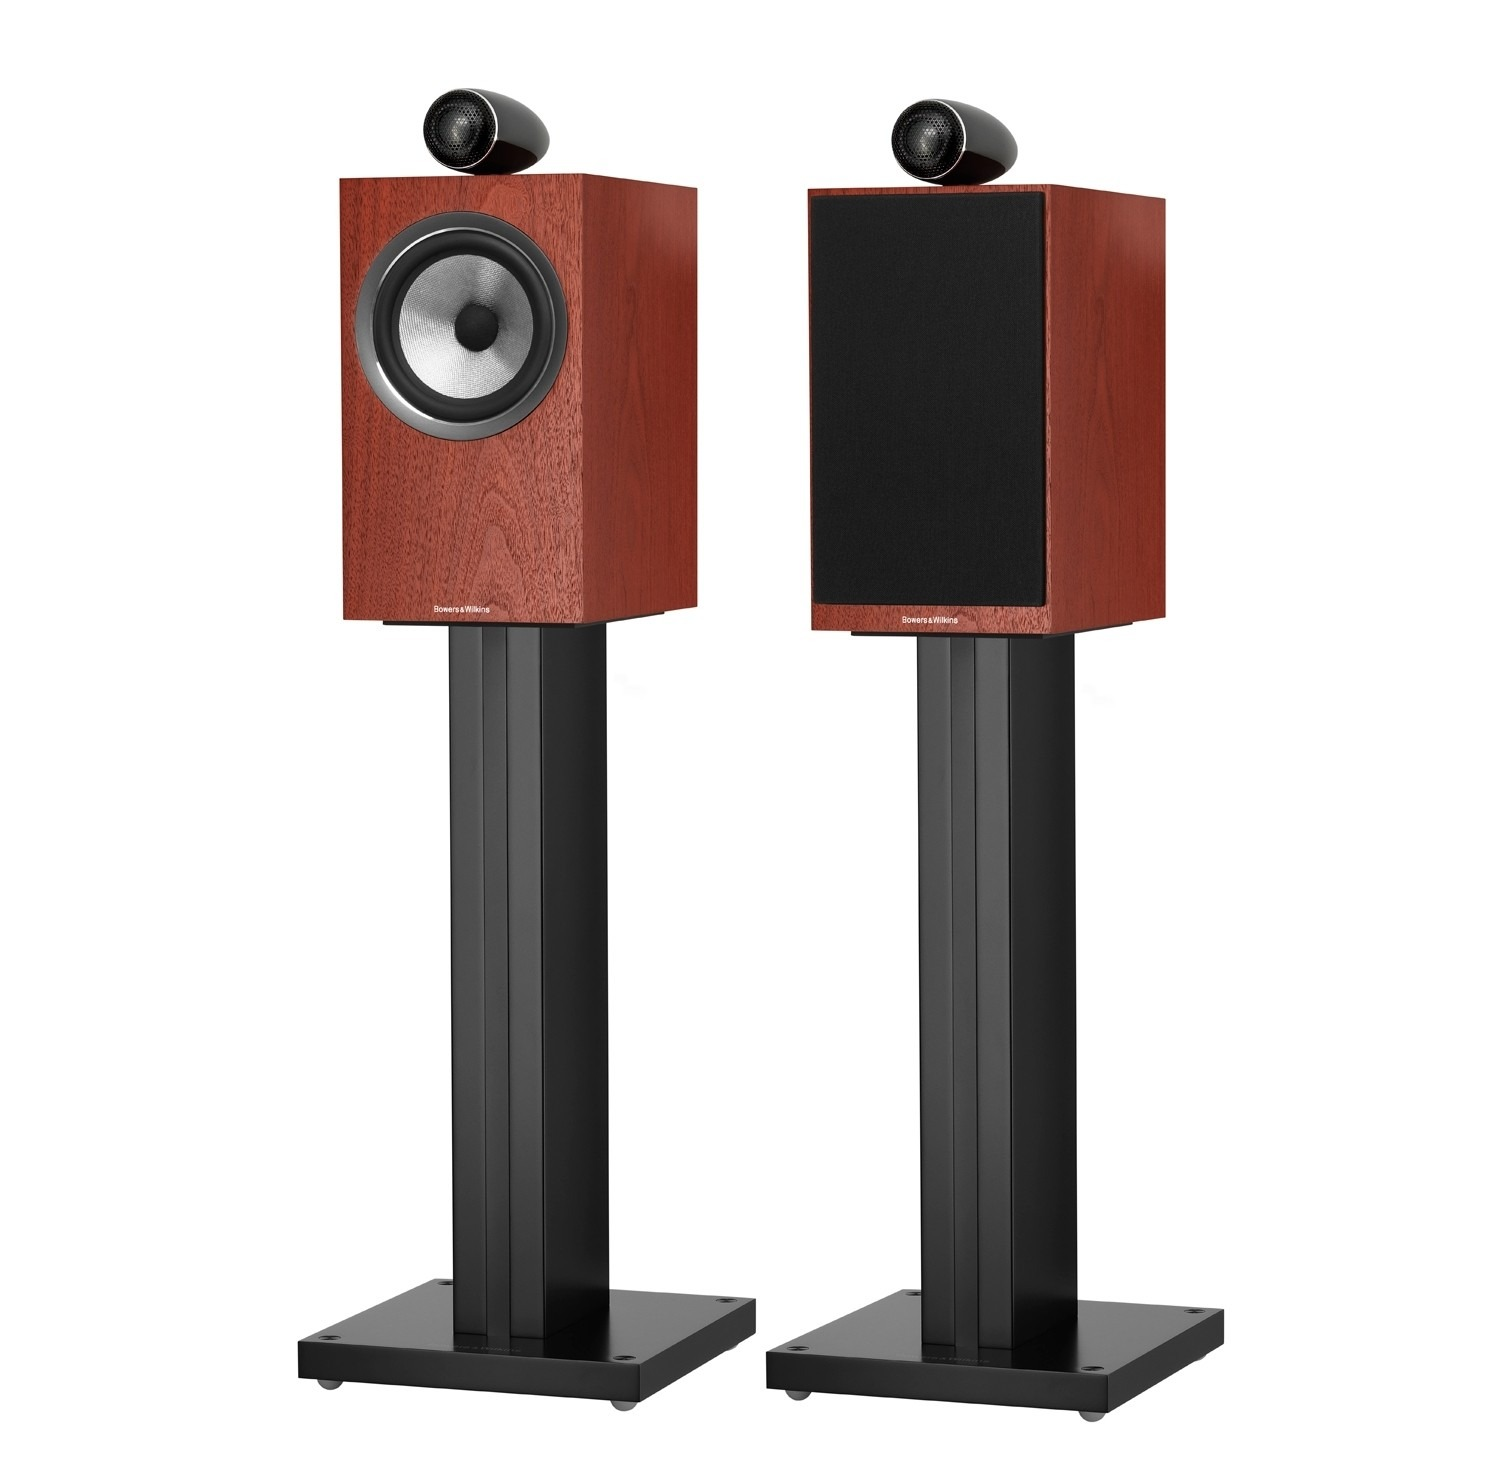 bowers wilkins 705 s2 enceintes biblioth ques digithome hifi. Black Bedroom Furniture Sets. Home Design Ideas